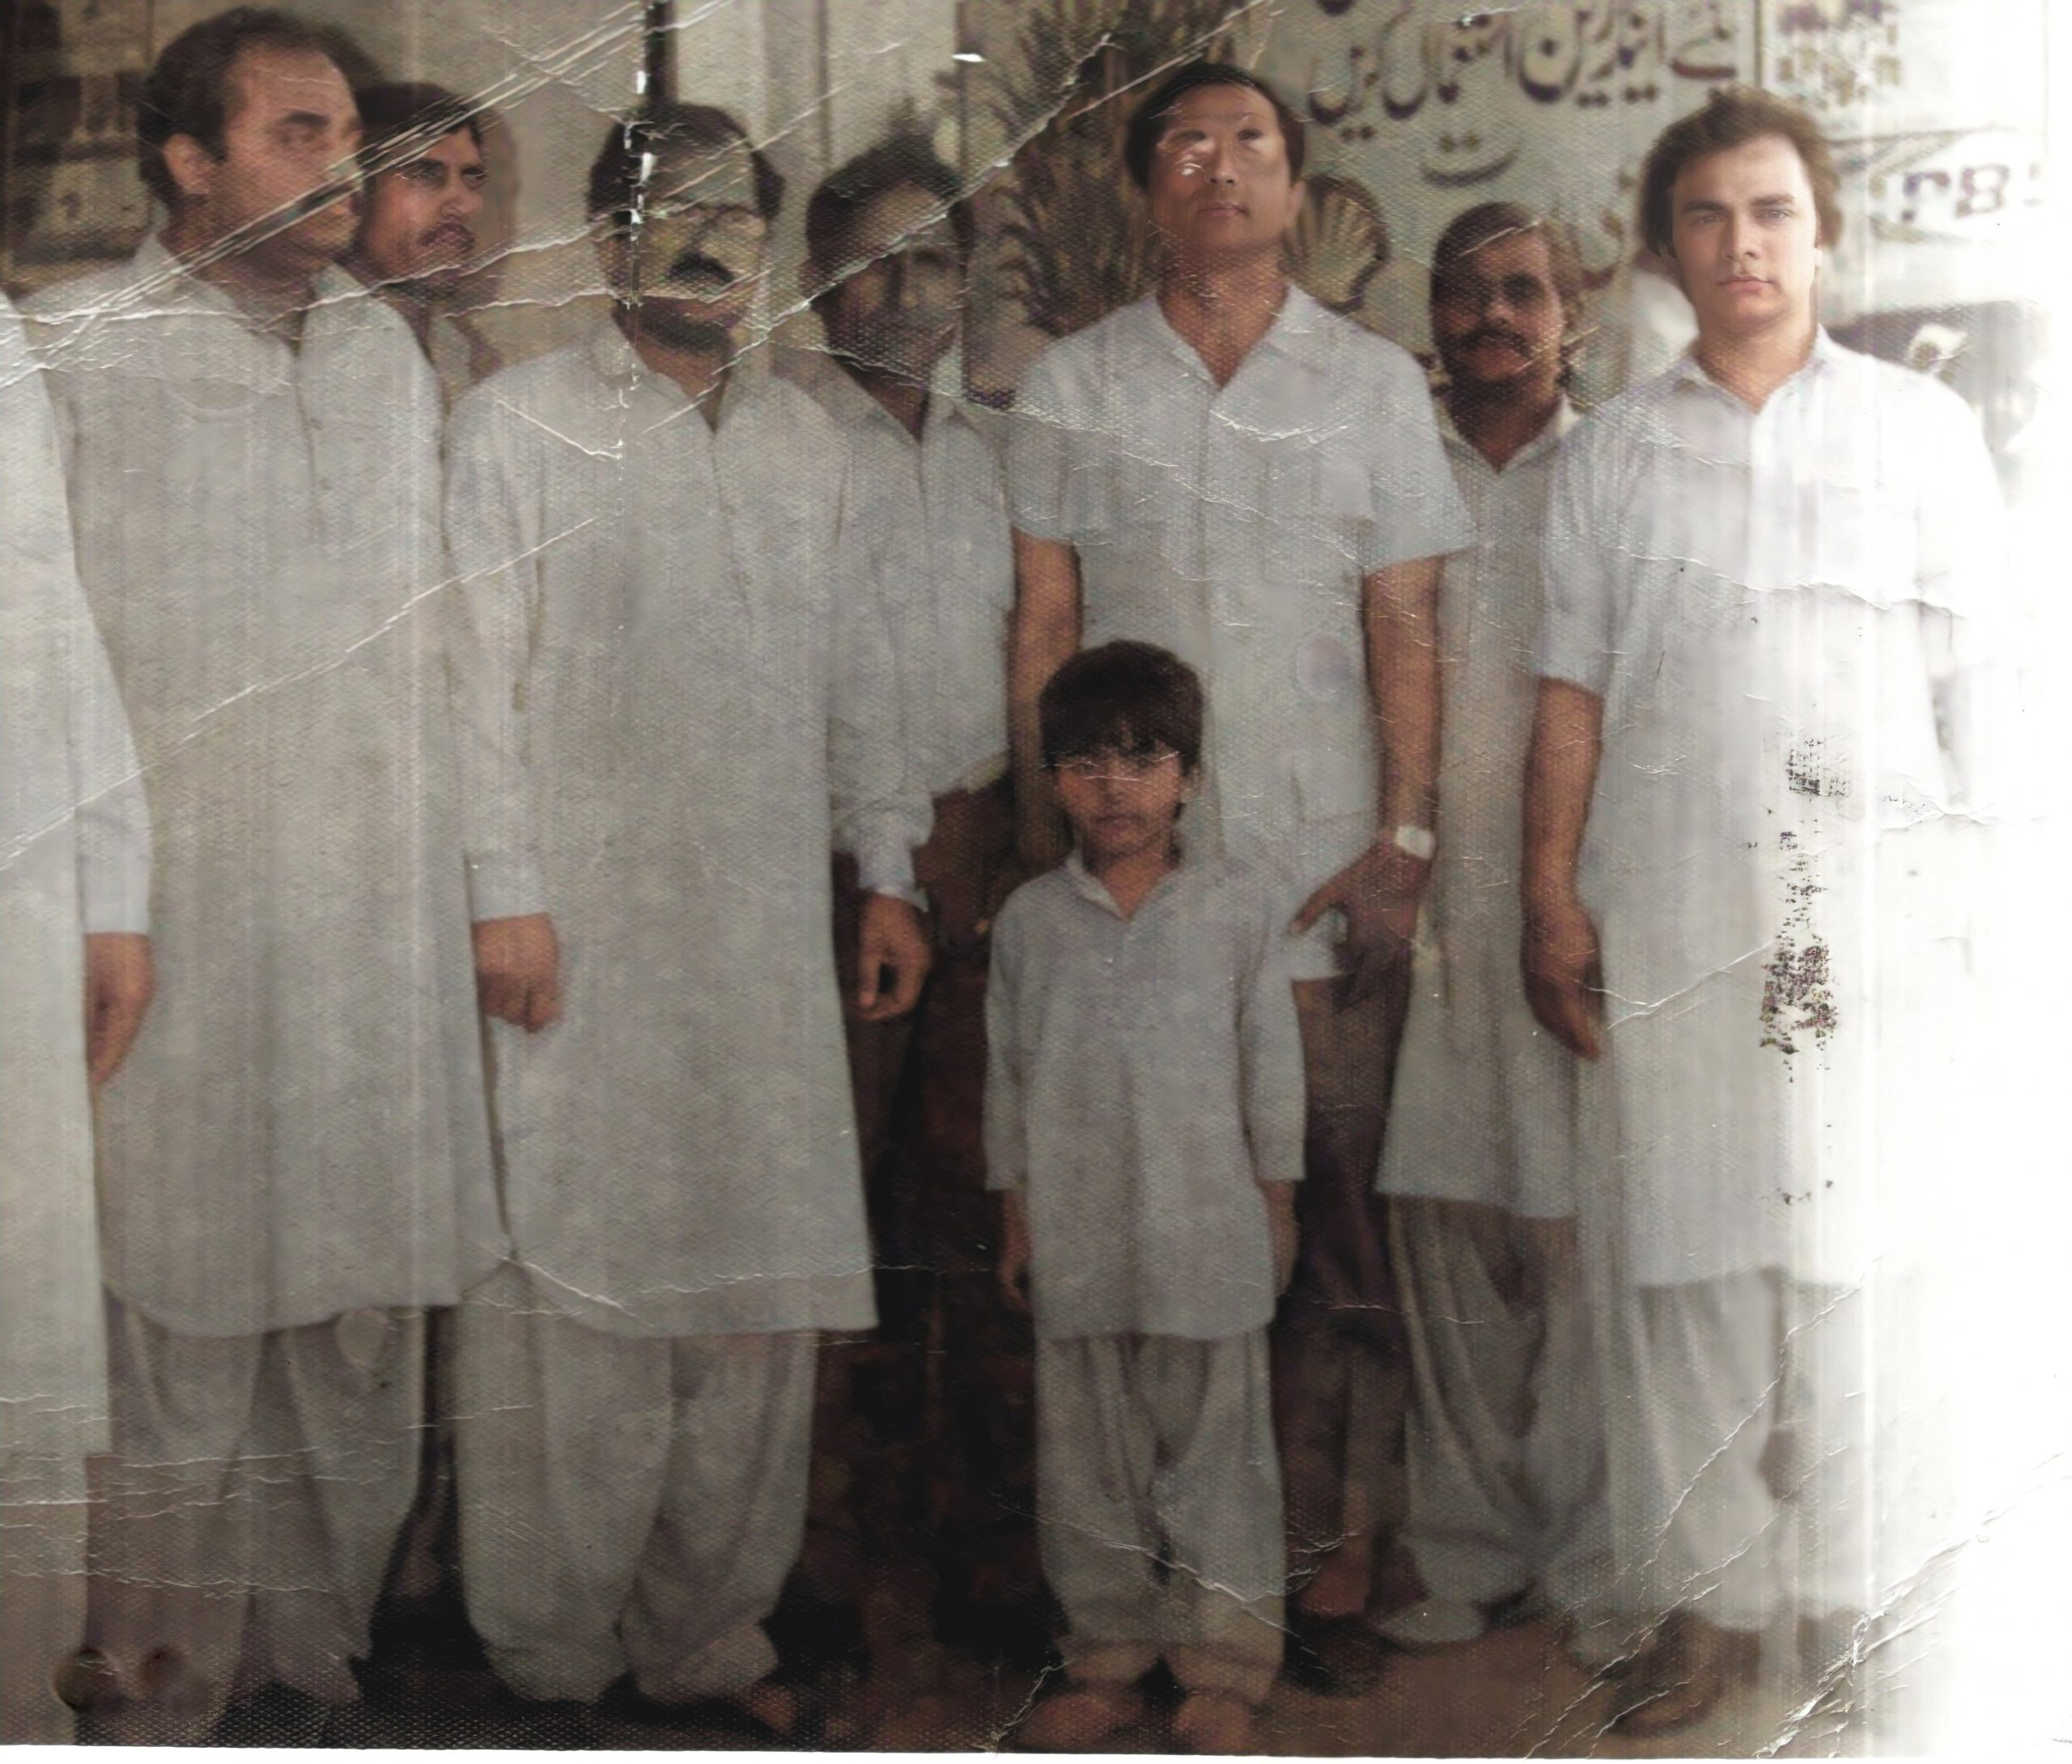 Mr MS Wahlah and Master Fraz Wahlah with Civil Rights Activists in Punjab Pakistan